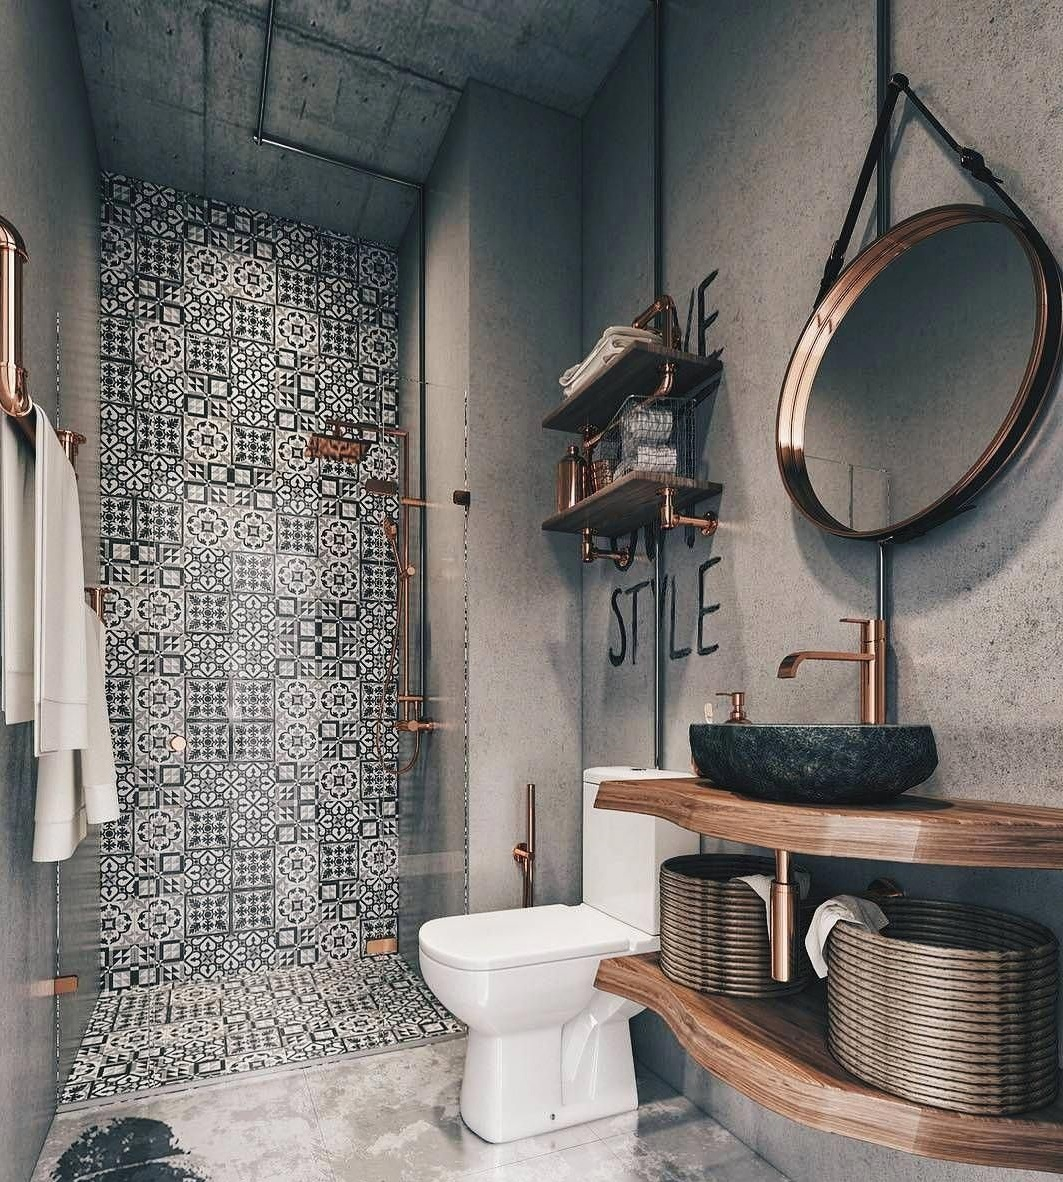 Metallic-Accents. Best +60 Ideas to Enhance Your Bathroom's Luxuriousness